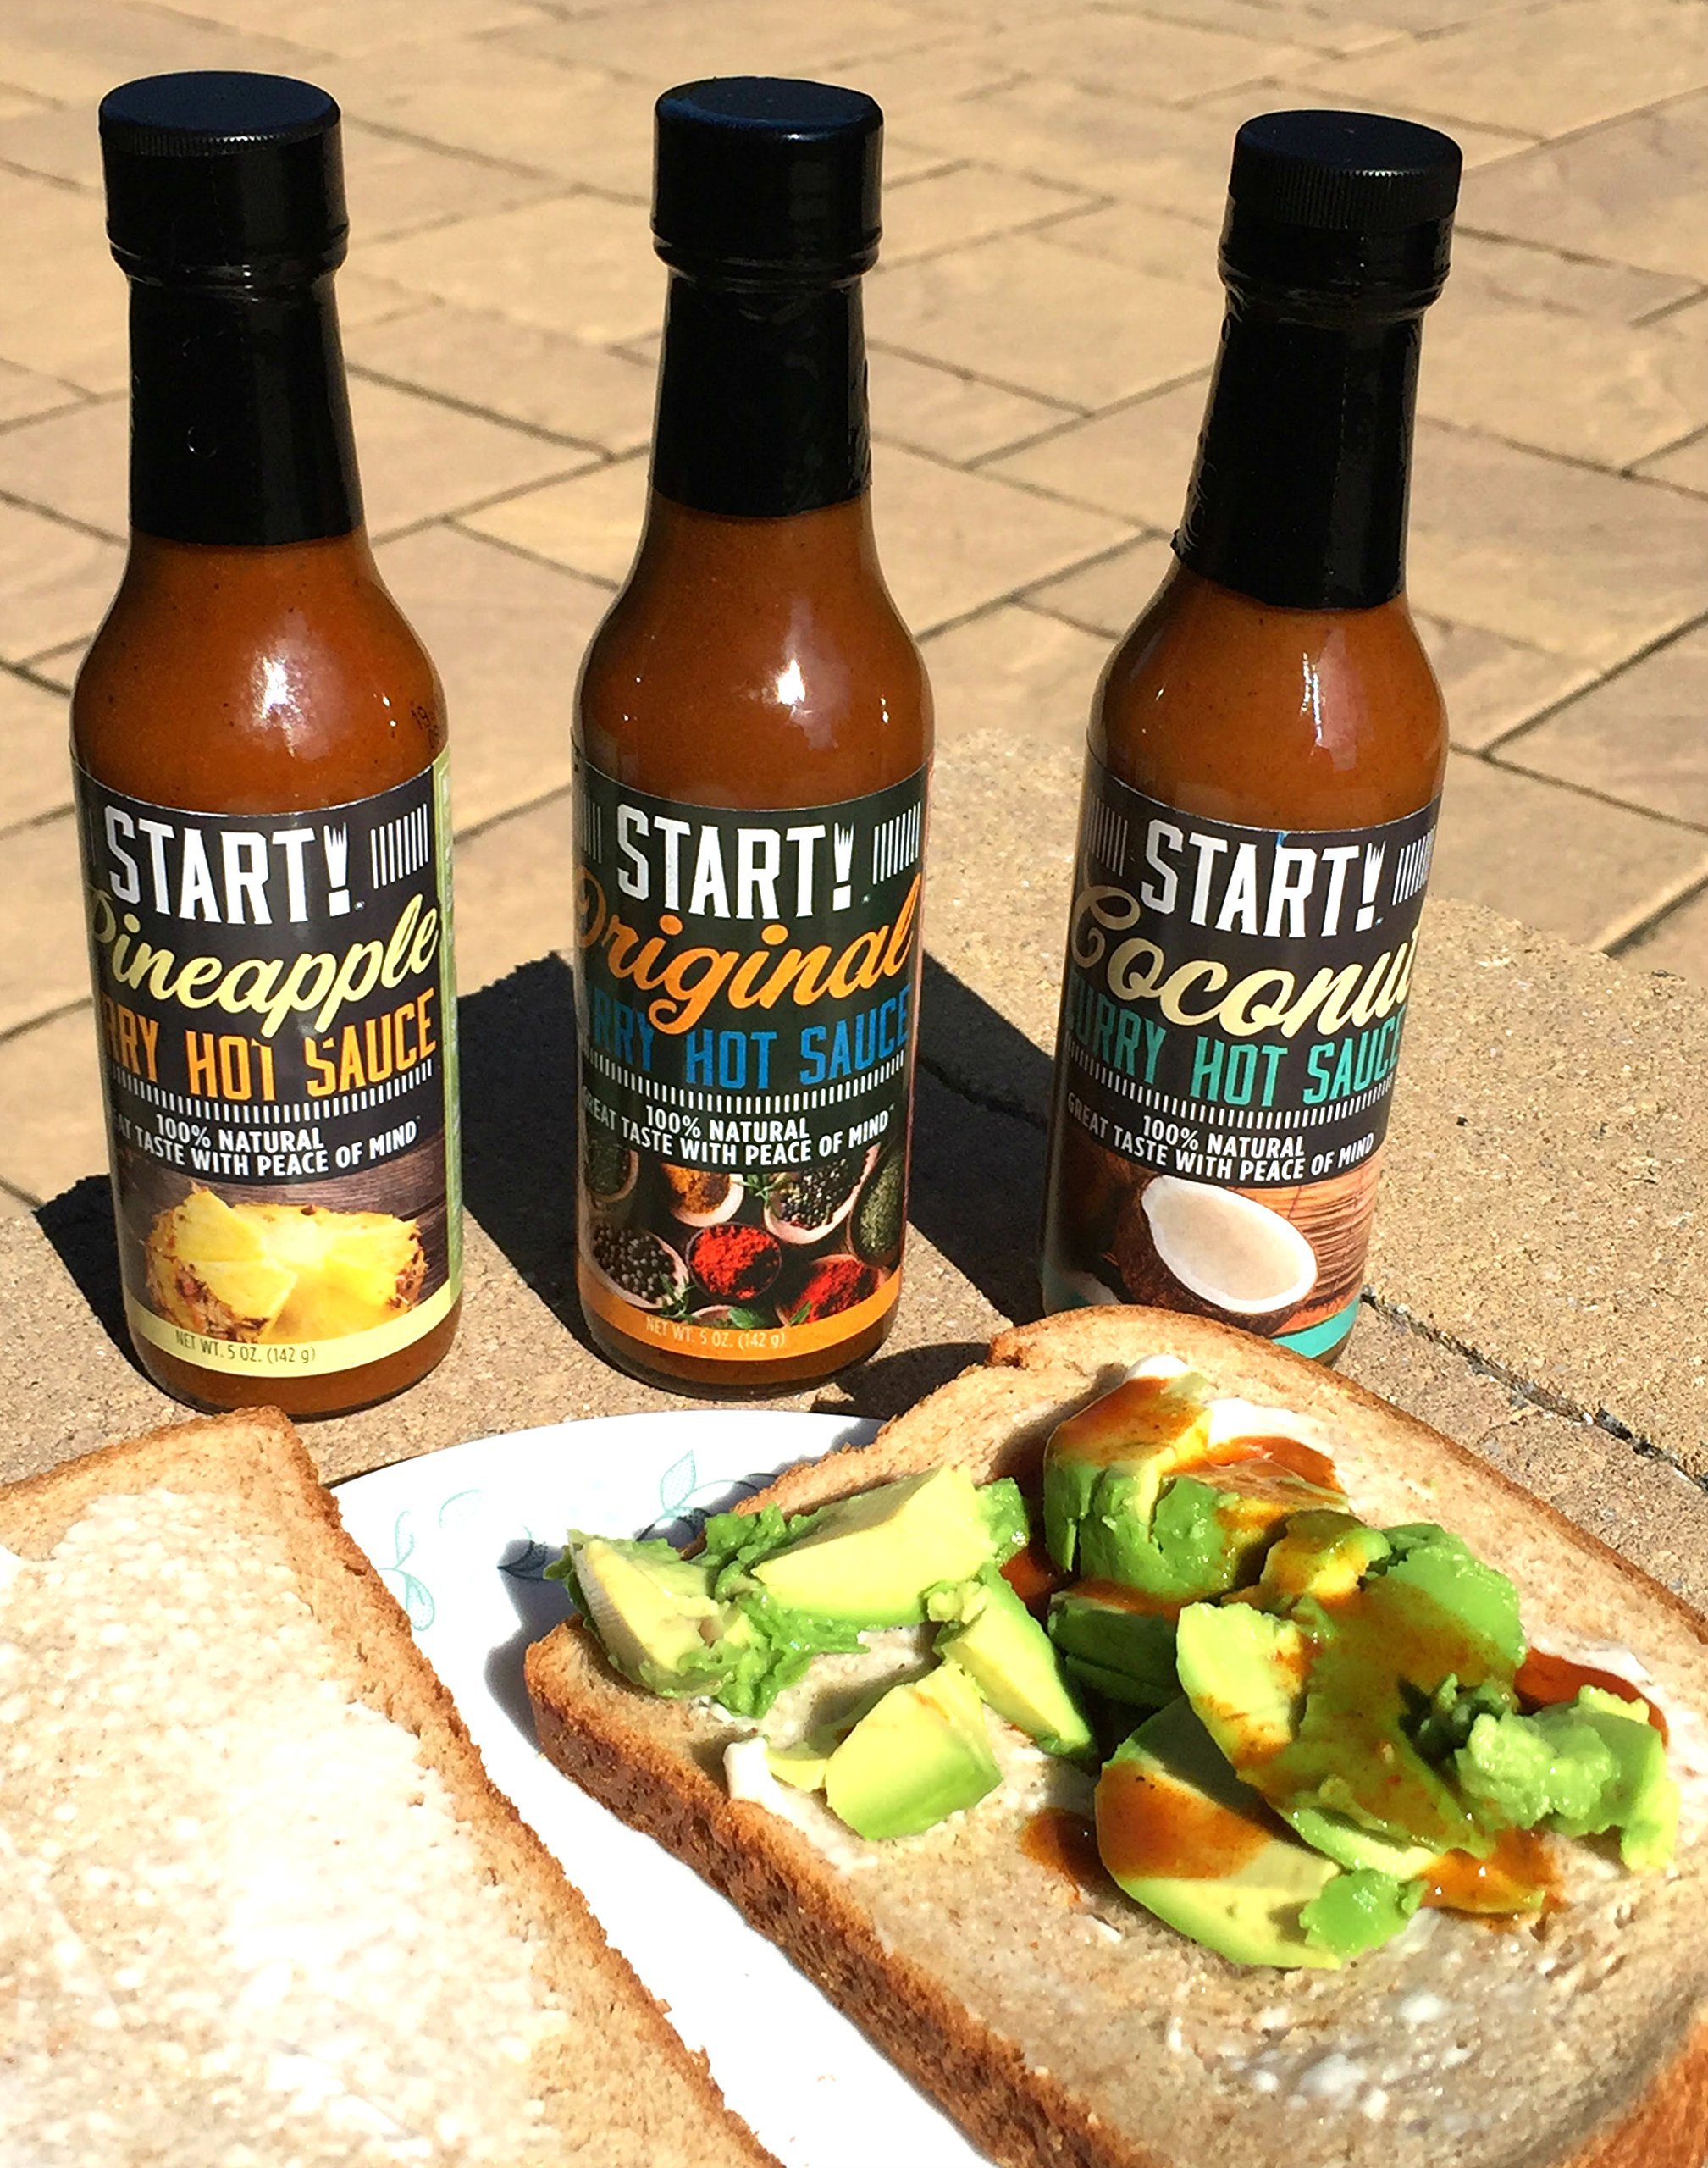 START! Curry Hot Sauce - Variety Sampler Party Pack - Original, Coconut, and Pineapple Flavors - Vegan + Gluten Free - Everyday Gourmet Light Spice (12 pack) by Start (Image #1)